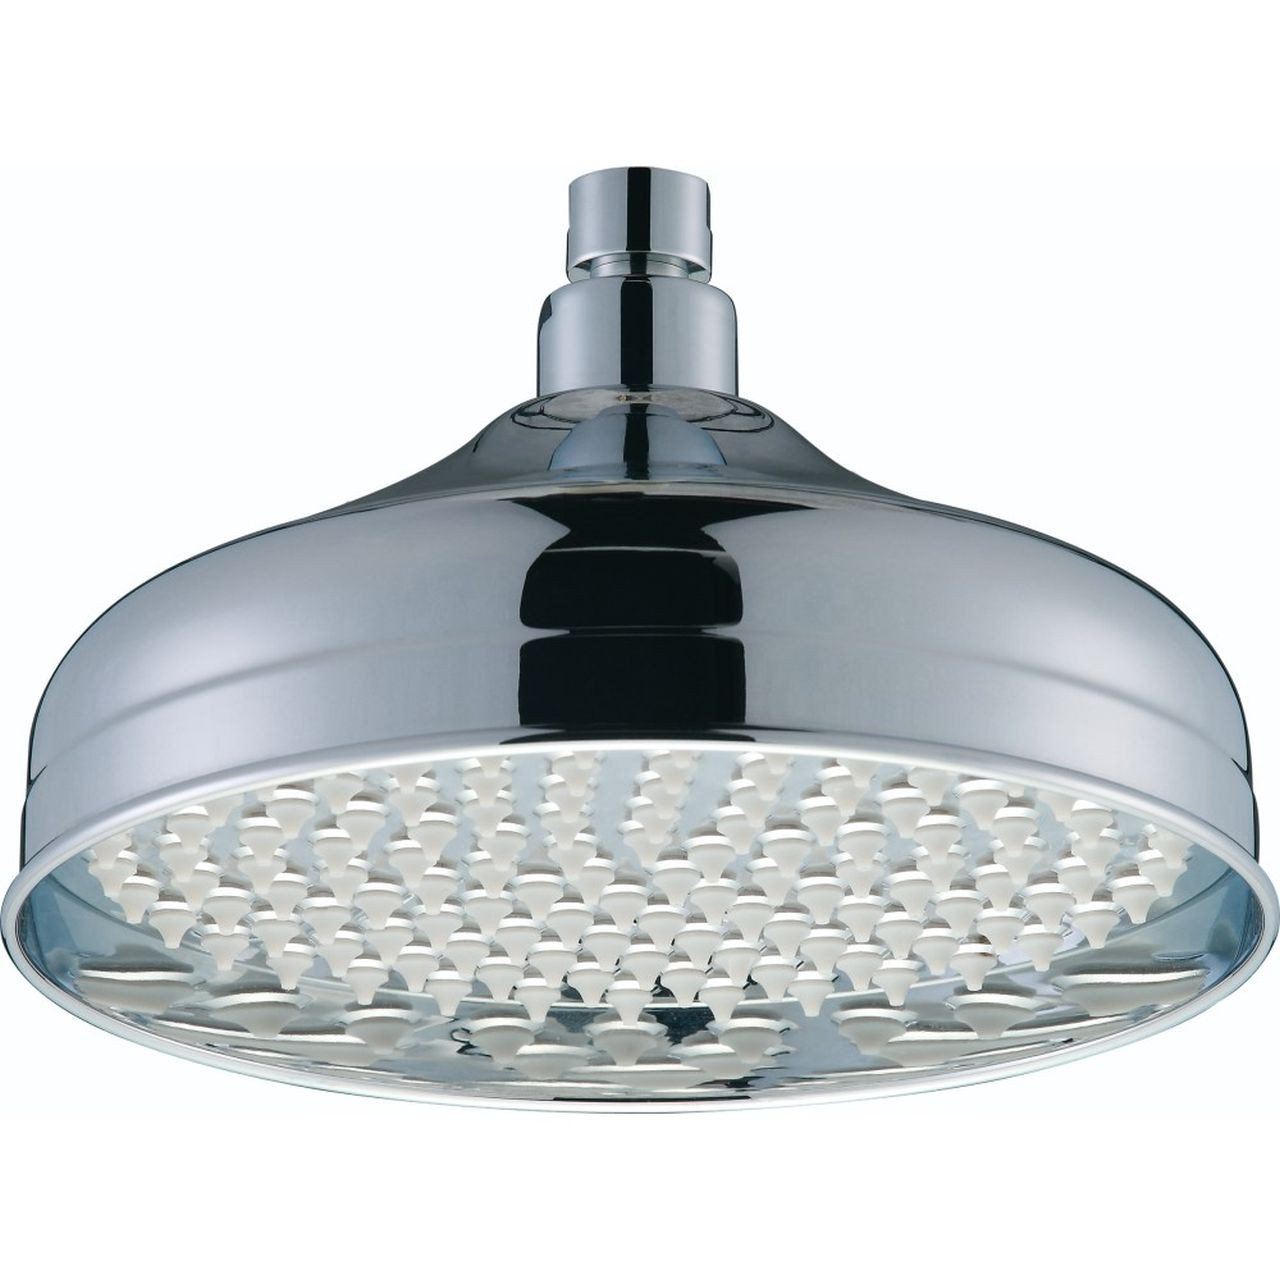 Bristan Chrome 145mm Traditional Round Fixed Shower Head - FH-TDRD02-C